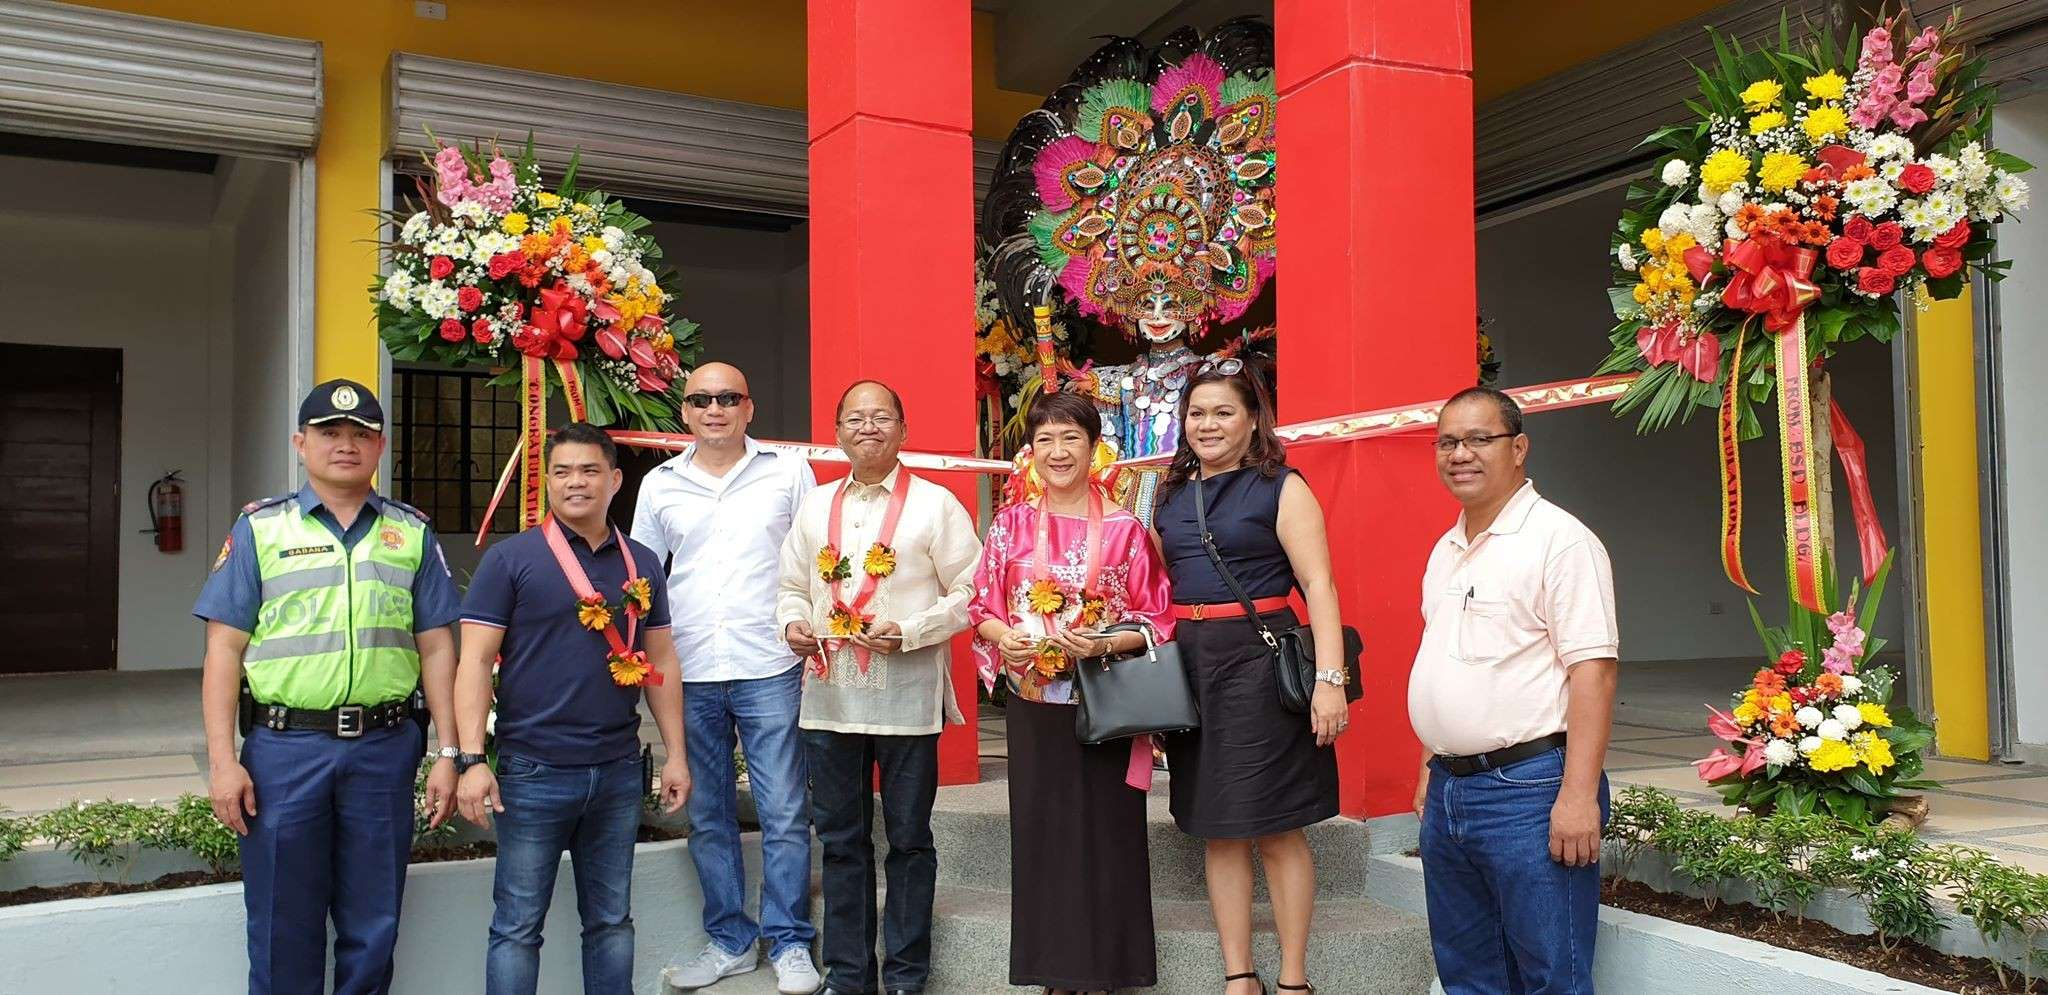 BACOLOD. Councilor Bart Orola (center), first lady Elsa Leonardia (3rd from right) and owners Bryan and Sheryl Dueñas (3rd and 6th from right) and guests during the opening of the BSD Building in Barangay Mansilingan Friday, February 8. (Photo by Carla Cañet)